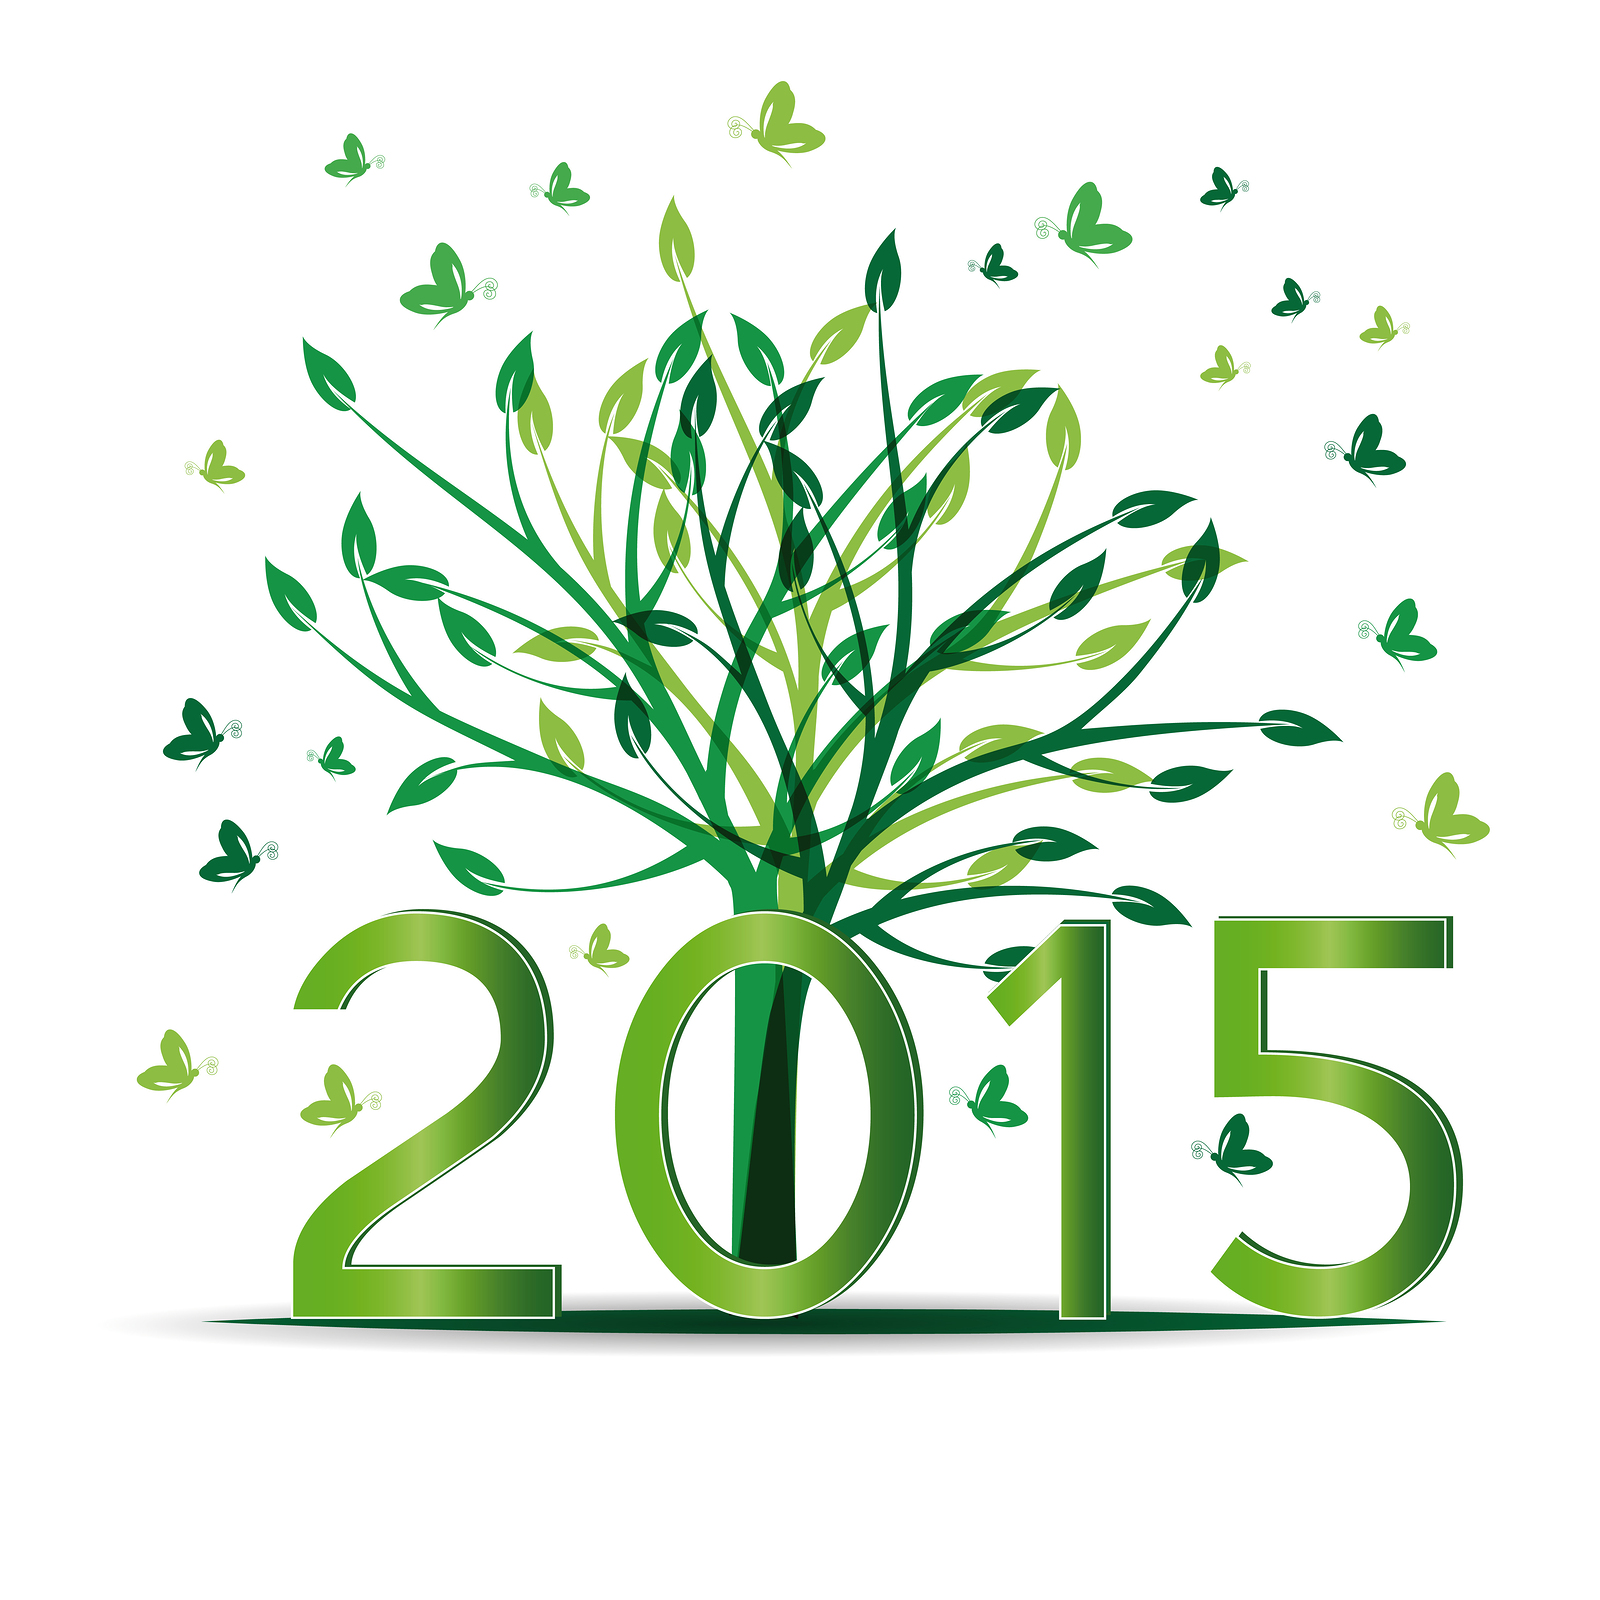 2015 >> 2015 What A Year For Dcr Dendritic Cell Research